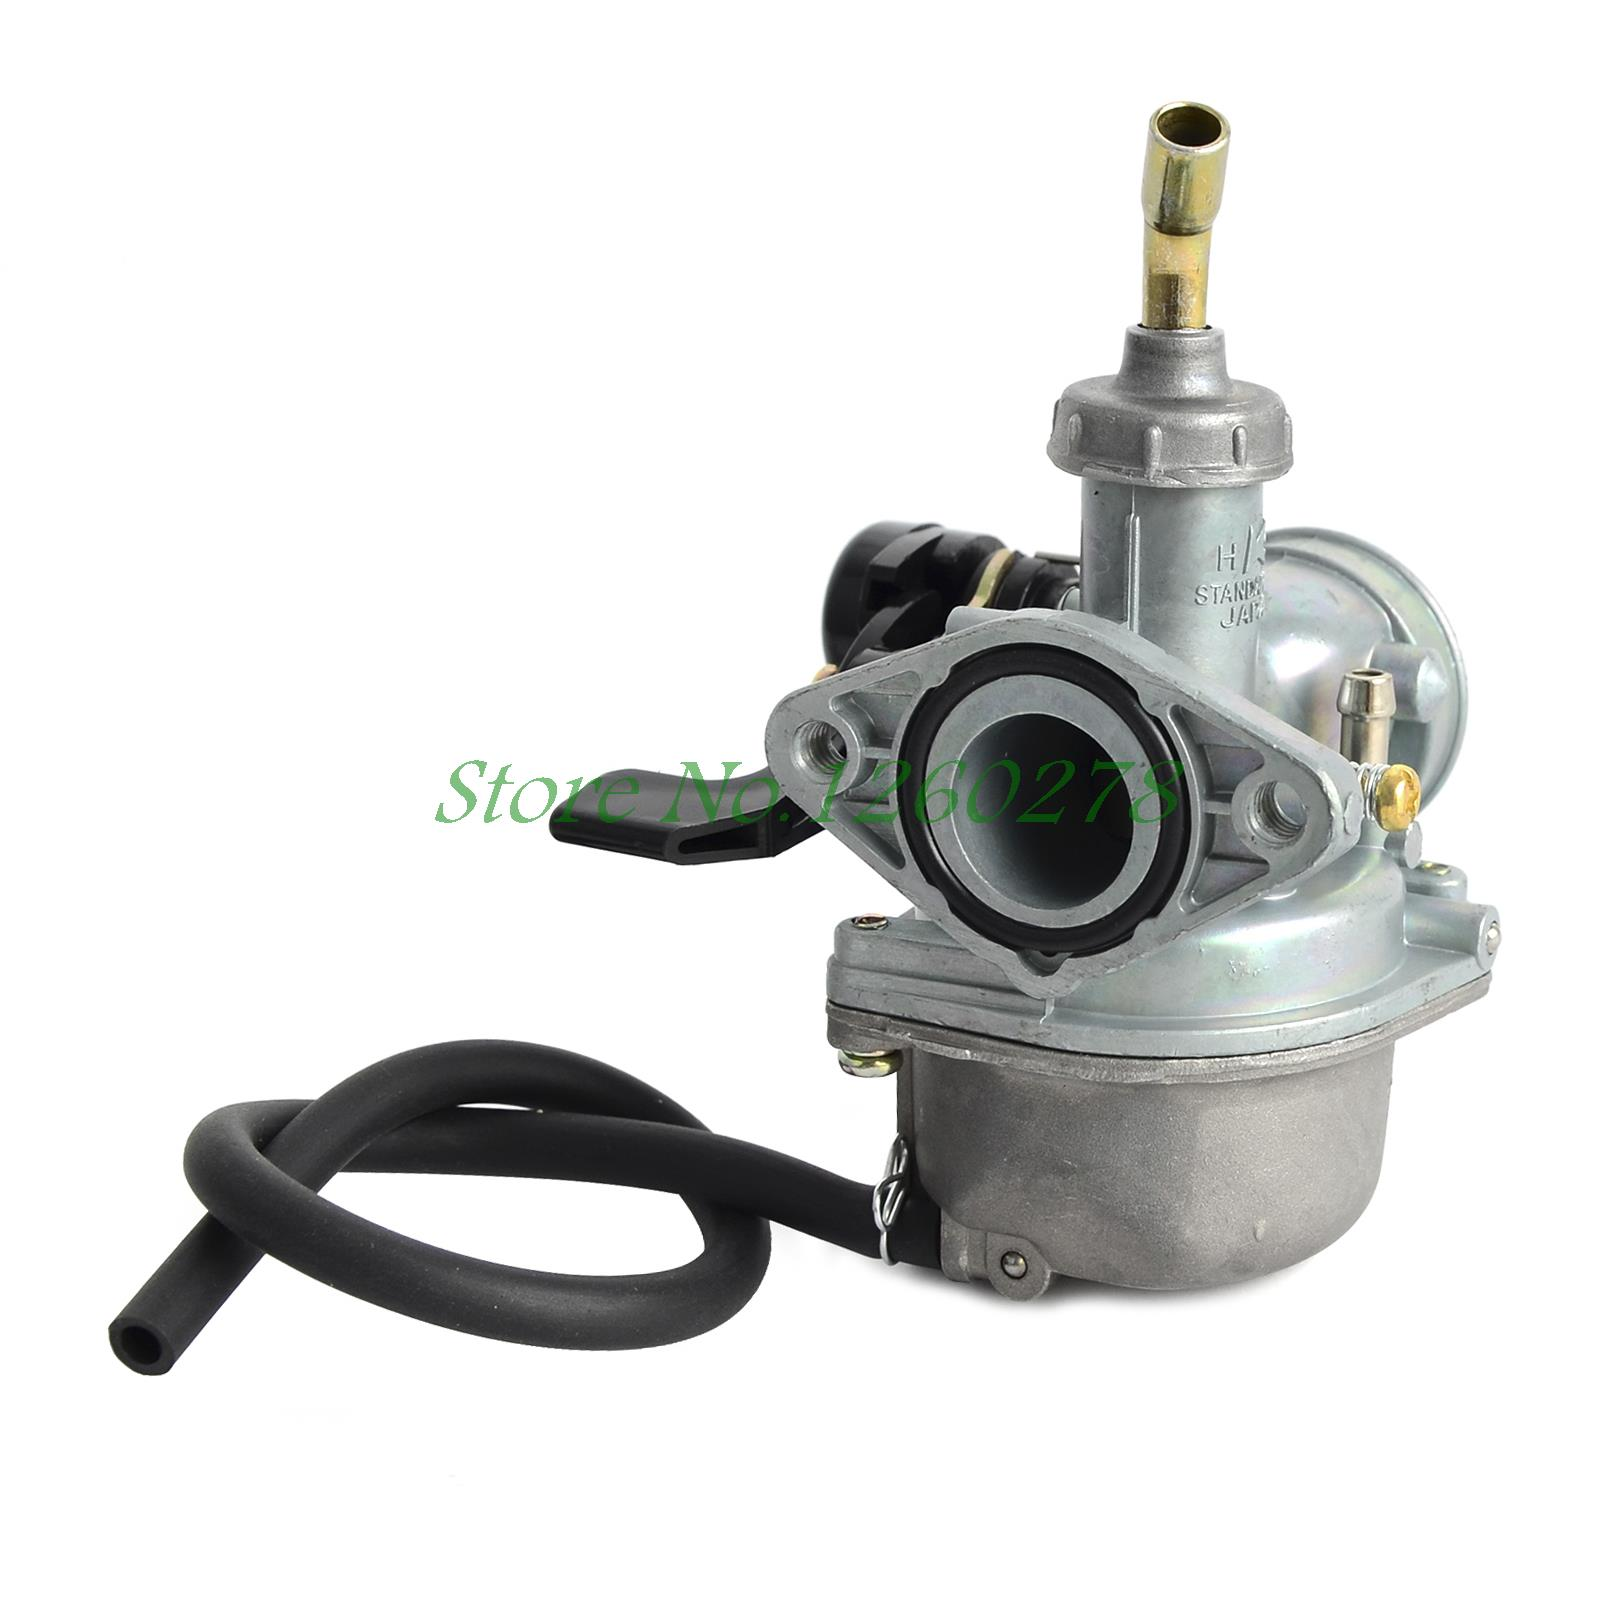 Motorcycle Carburetor for Chinese Dirt Bike 50cc 70cc 90cc 110cc 125cc Dirt Bike SCOOTER BIKE ATV envy ats dirt scooter red brand new complete